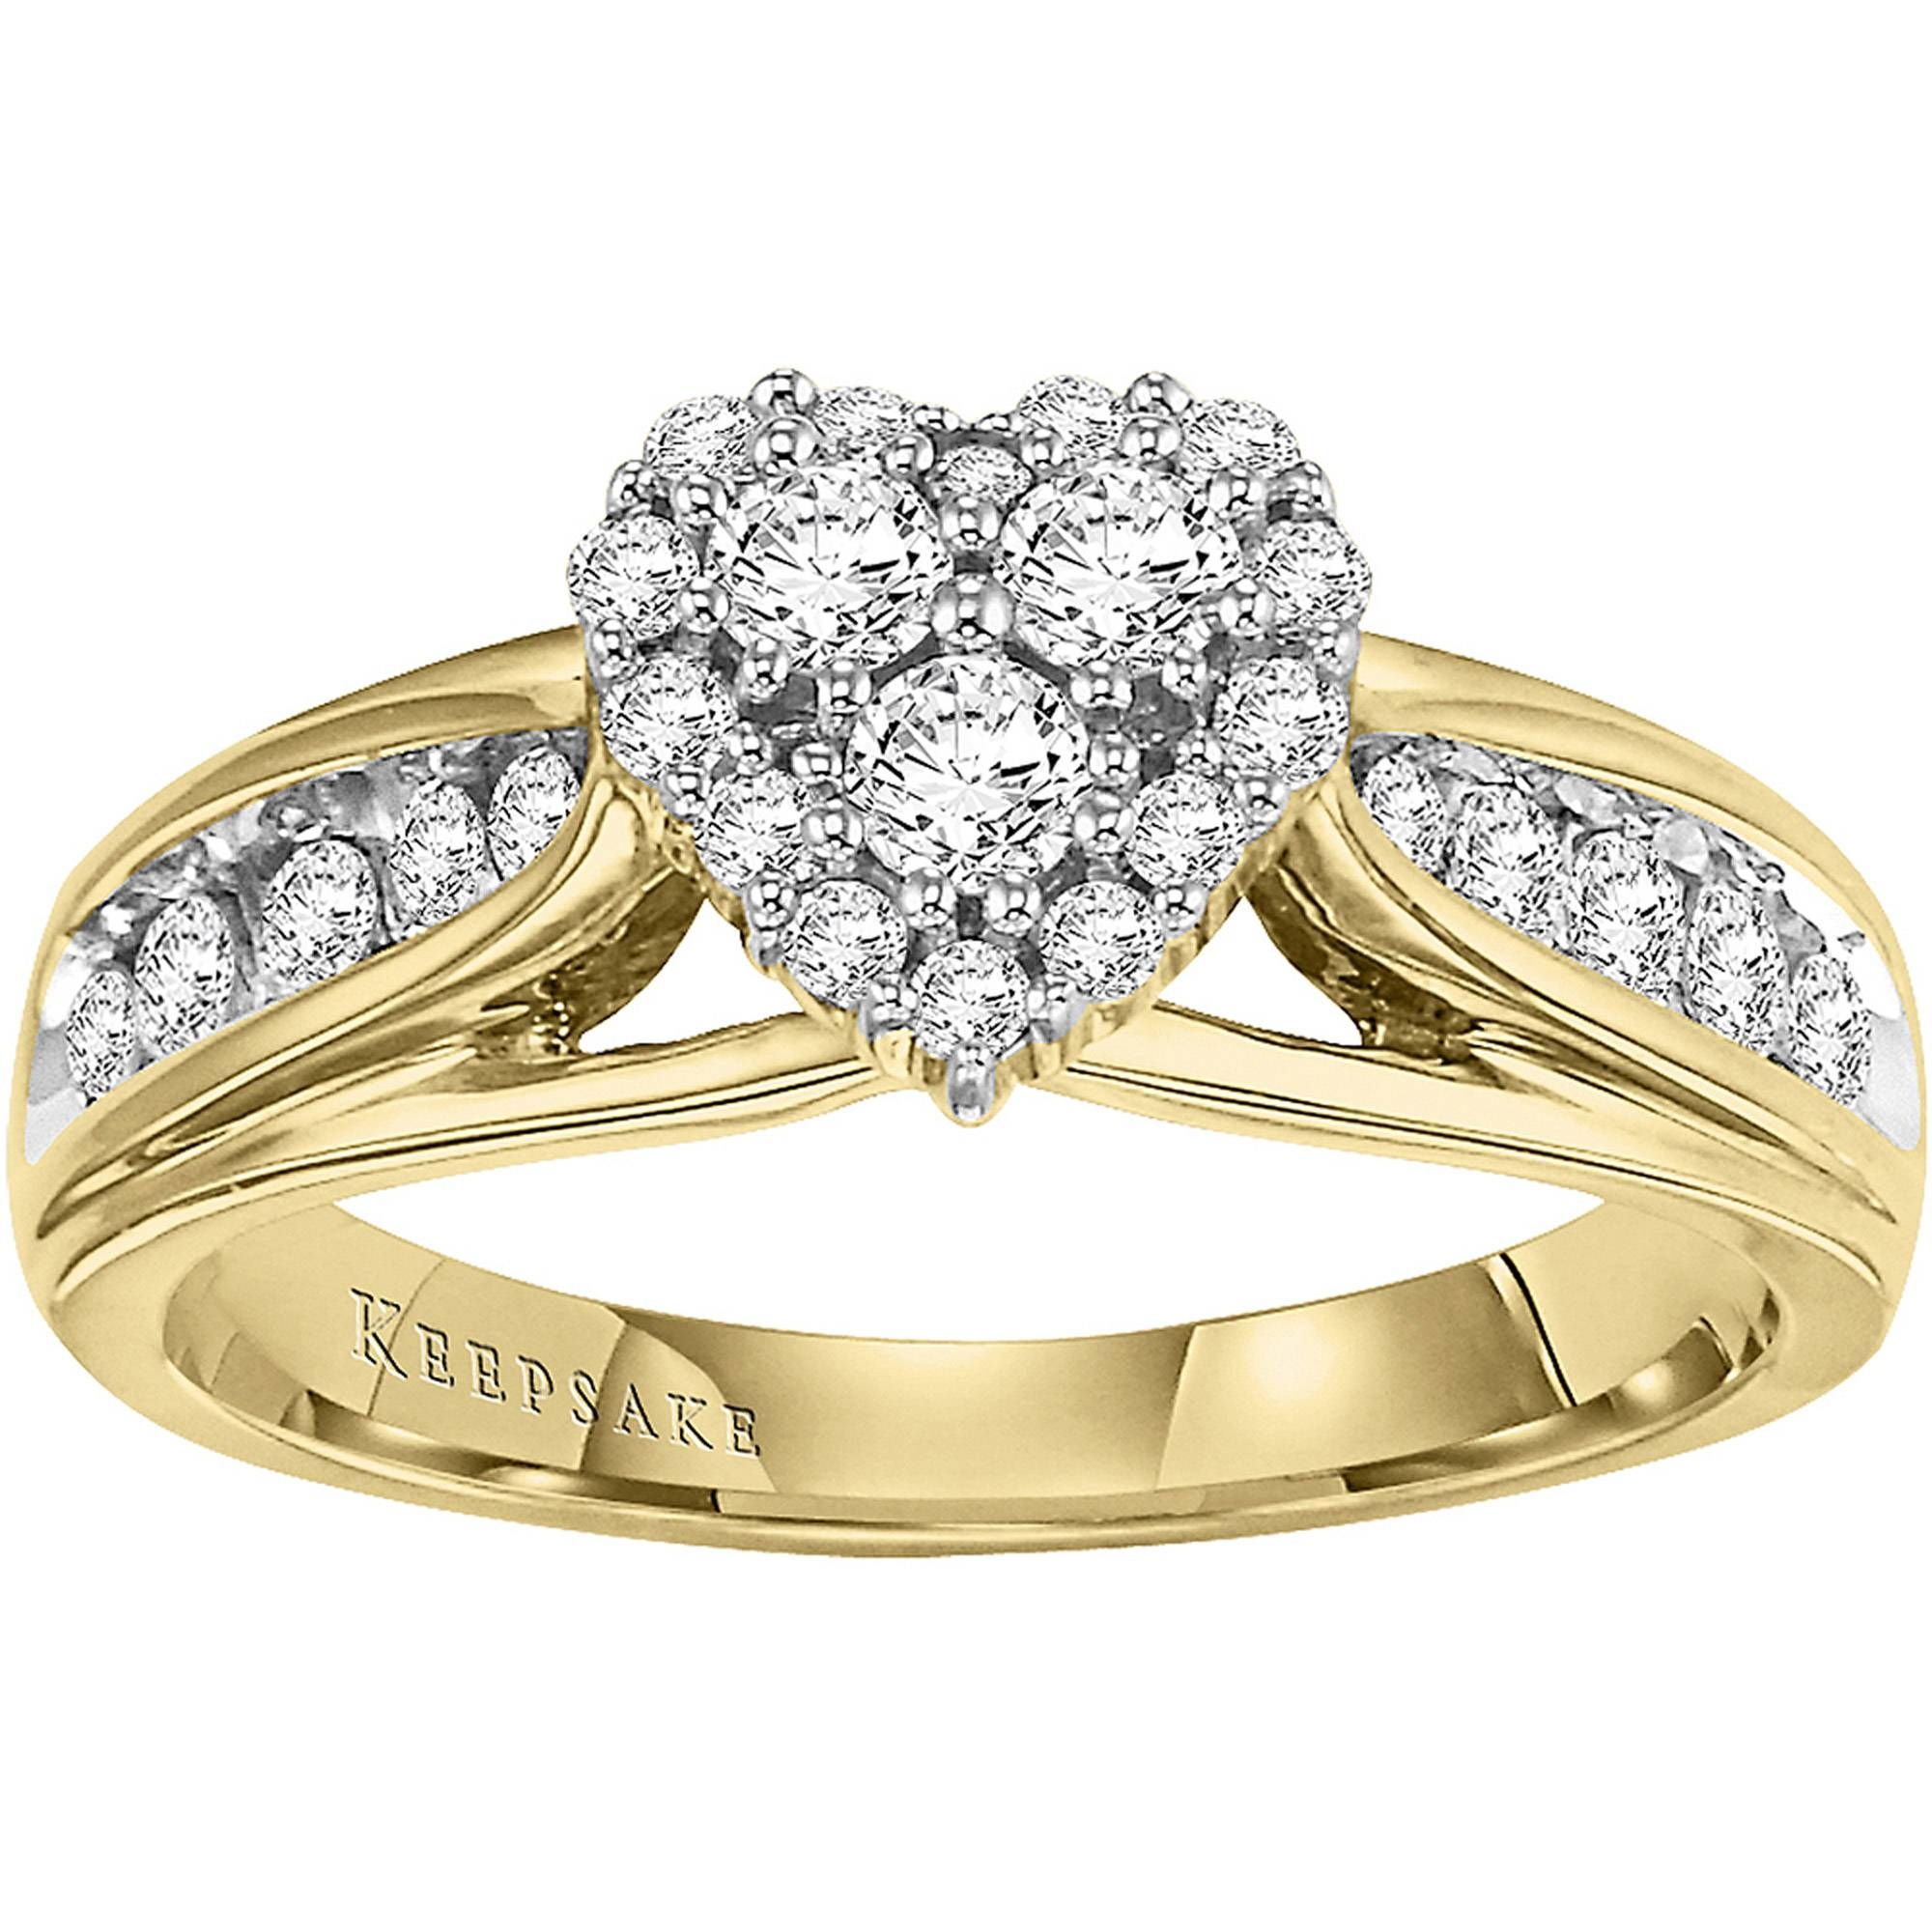 Keepsake Hearts Desire 1/2 Carat T.w. Certified Diamond 10Kt Regarding Keepsake Wedding Bands (Gallery 8 of 15)